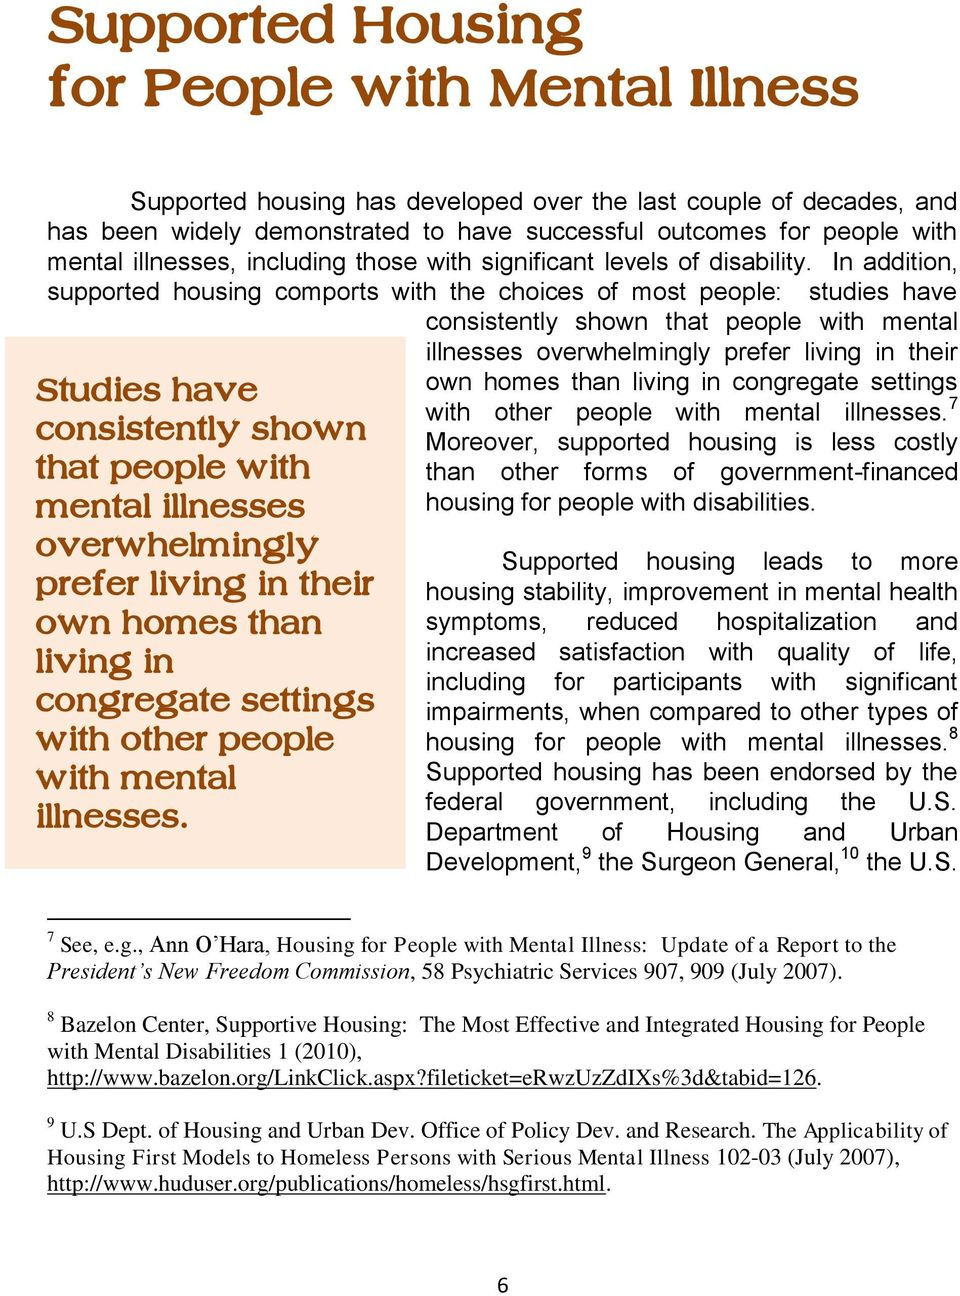 In addition, supported housing comports with the choices of most people: Studies have consistently shown that people with mental illnesses overwhelmingly prefer living in their own homes than living